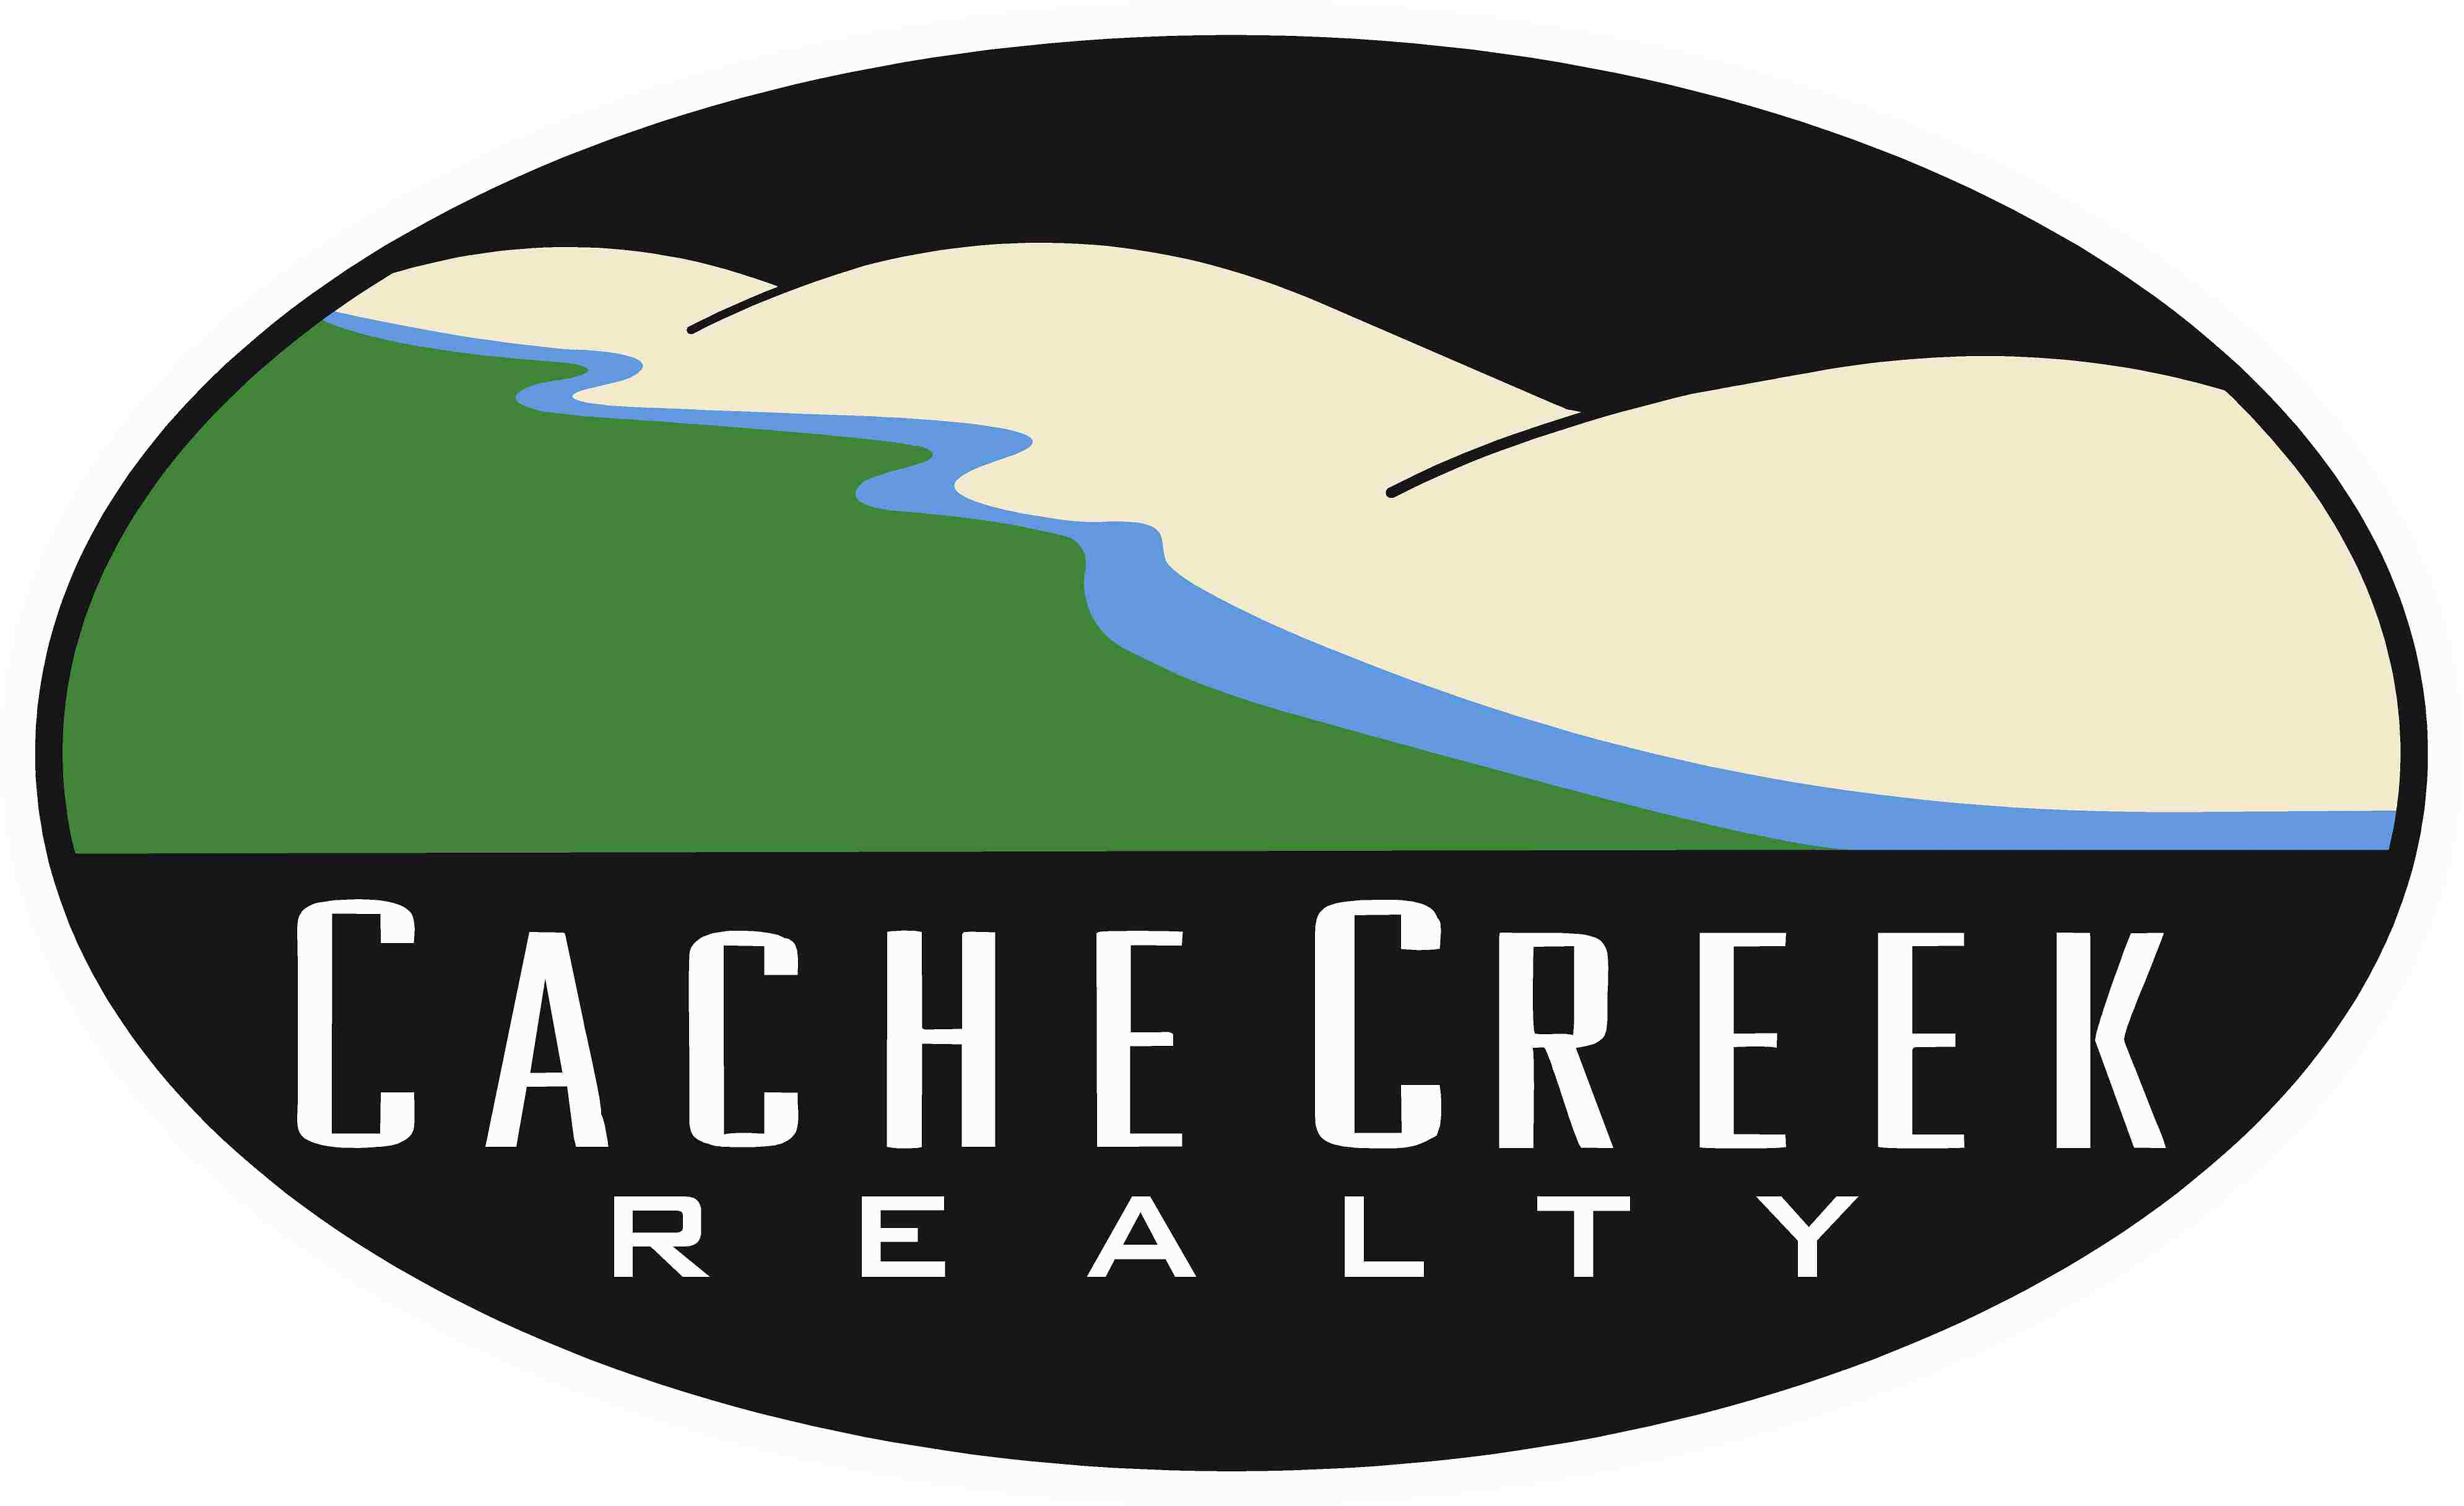 Pmz real estate logo clipart picture royalty free download Map Search | Cache Creek Realty | Woodland CA | Bob Frommelt, Tari ... picture royalty free download